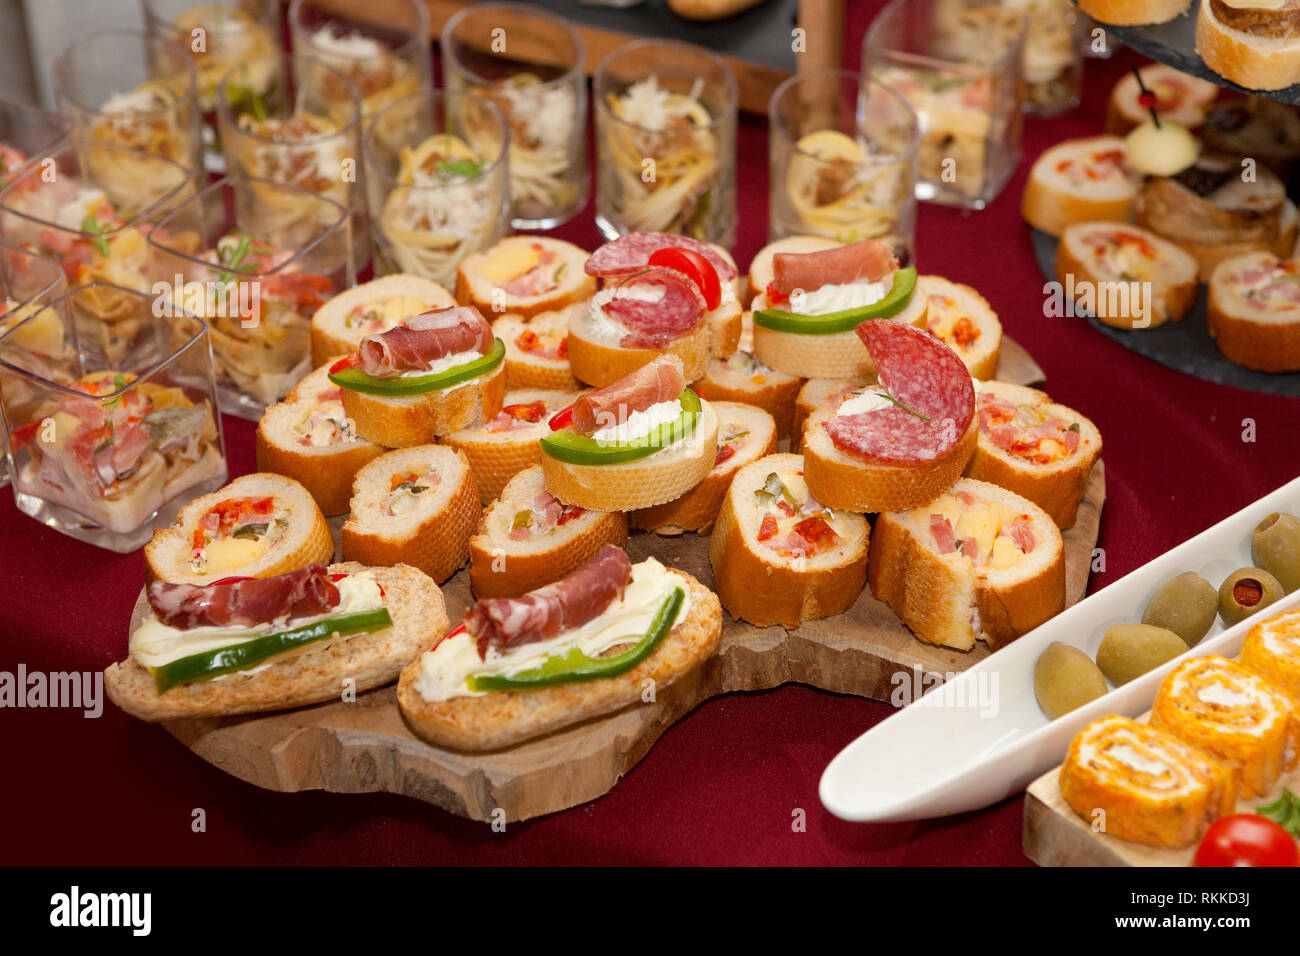 Catering food, colorful canapes beautifully decorated - Stock Image